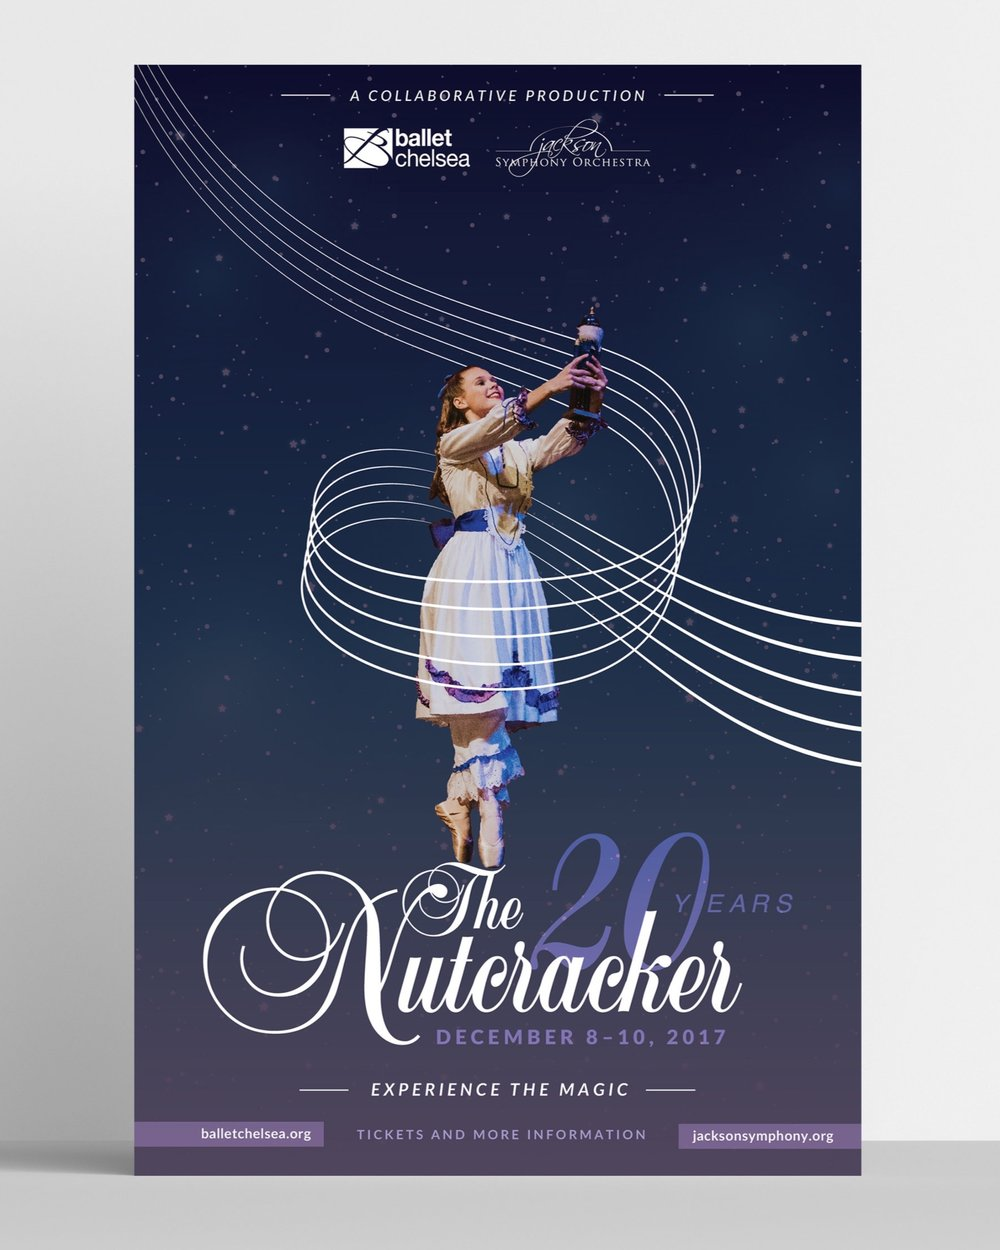 The Nutcracker's 20th Year // A Collaborative Production of Ballet Chelsea and the Jackson Symphony Orchestra